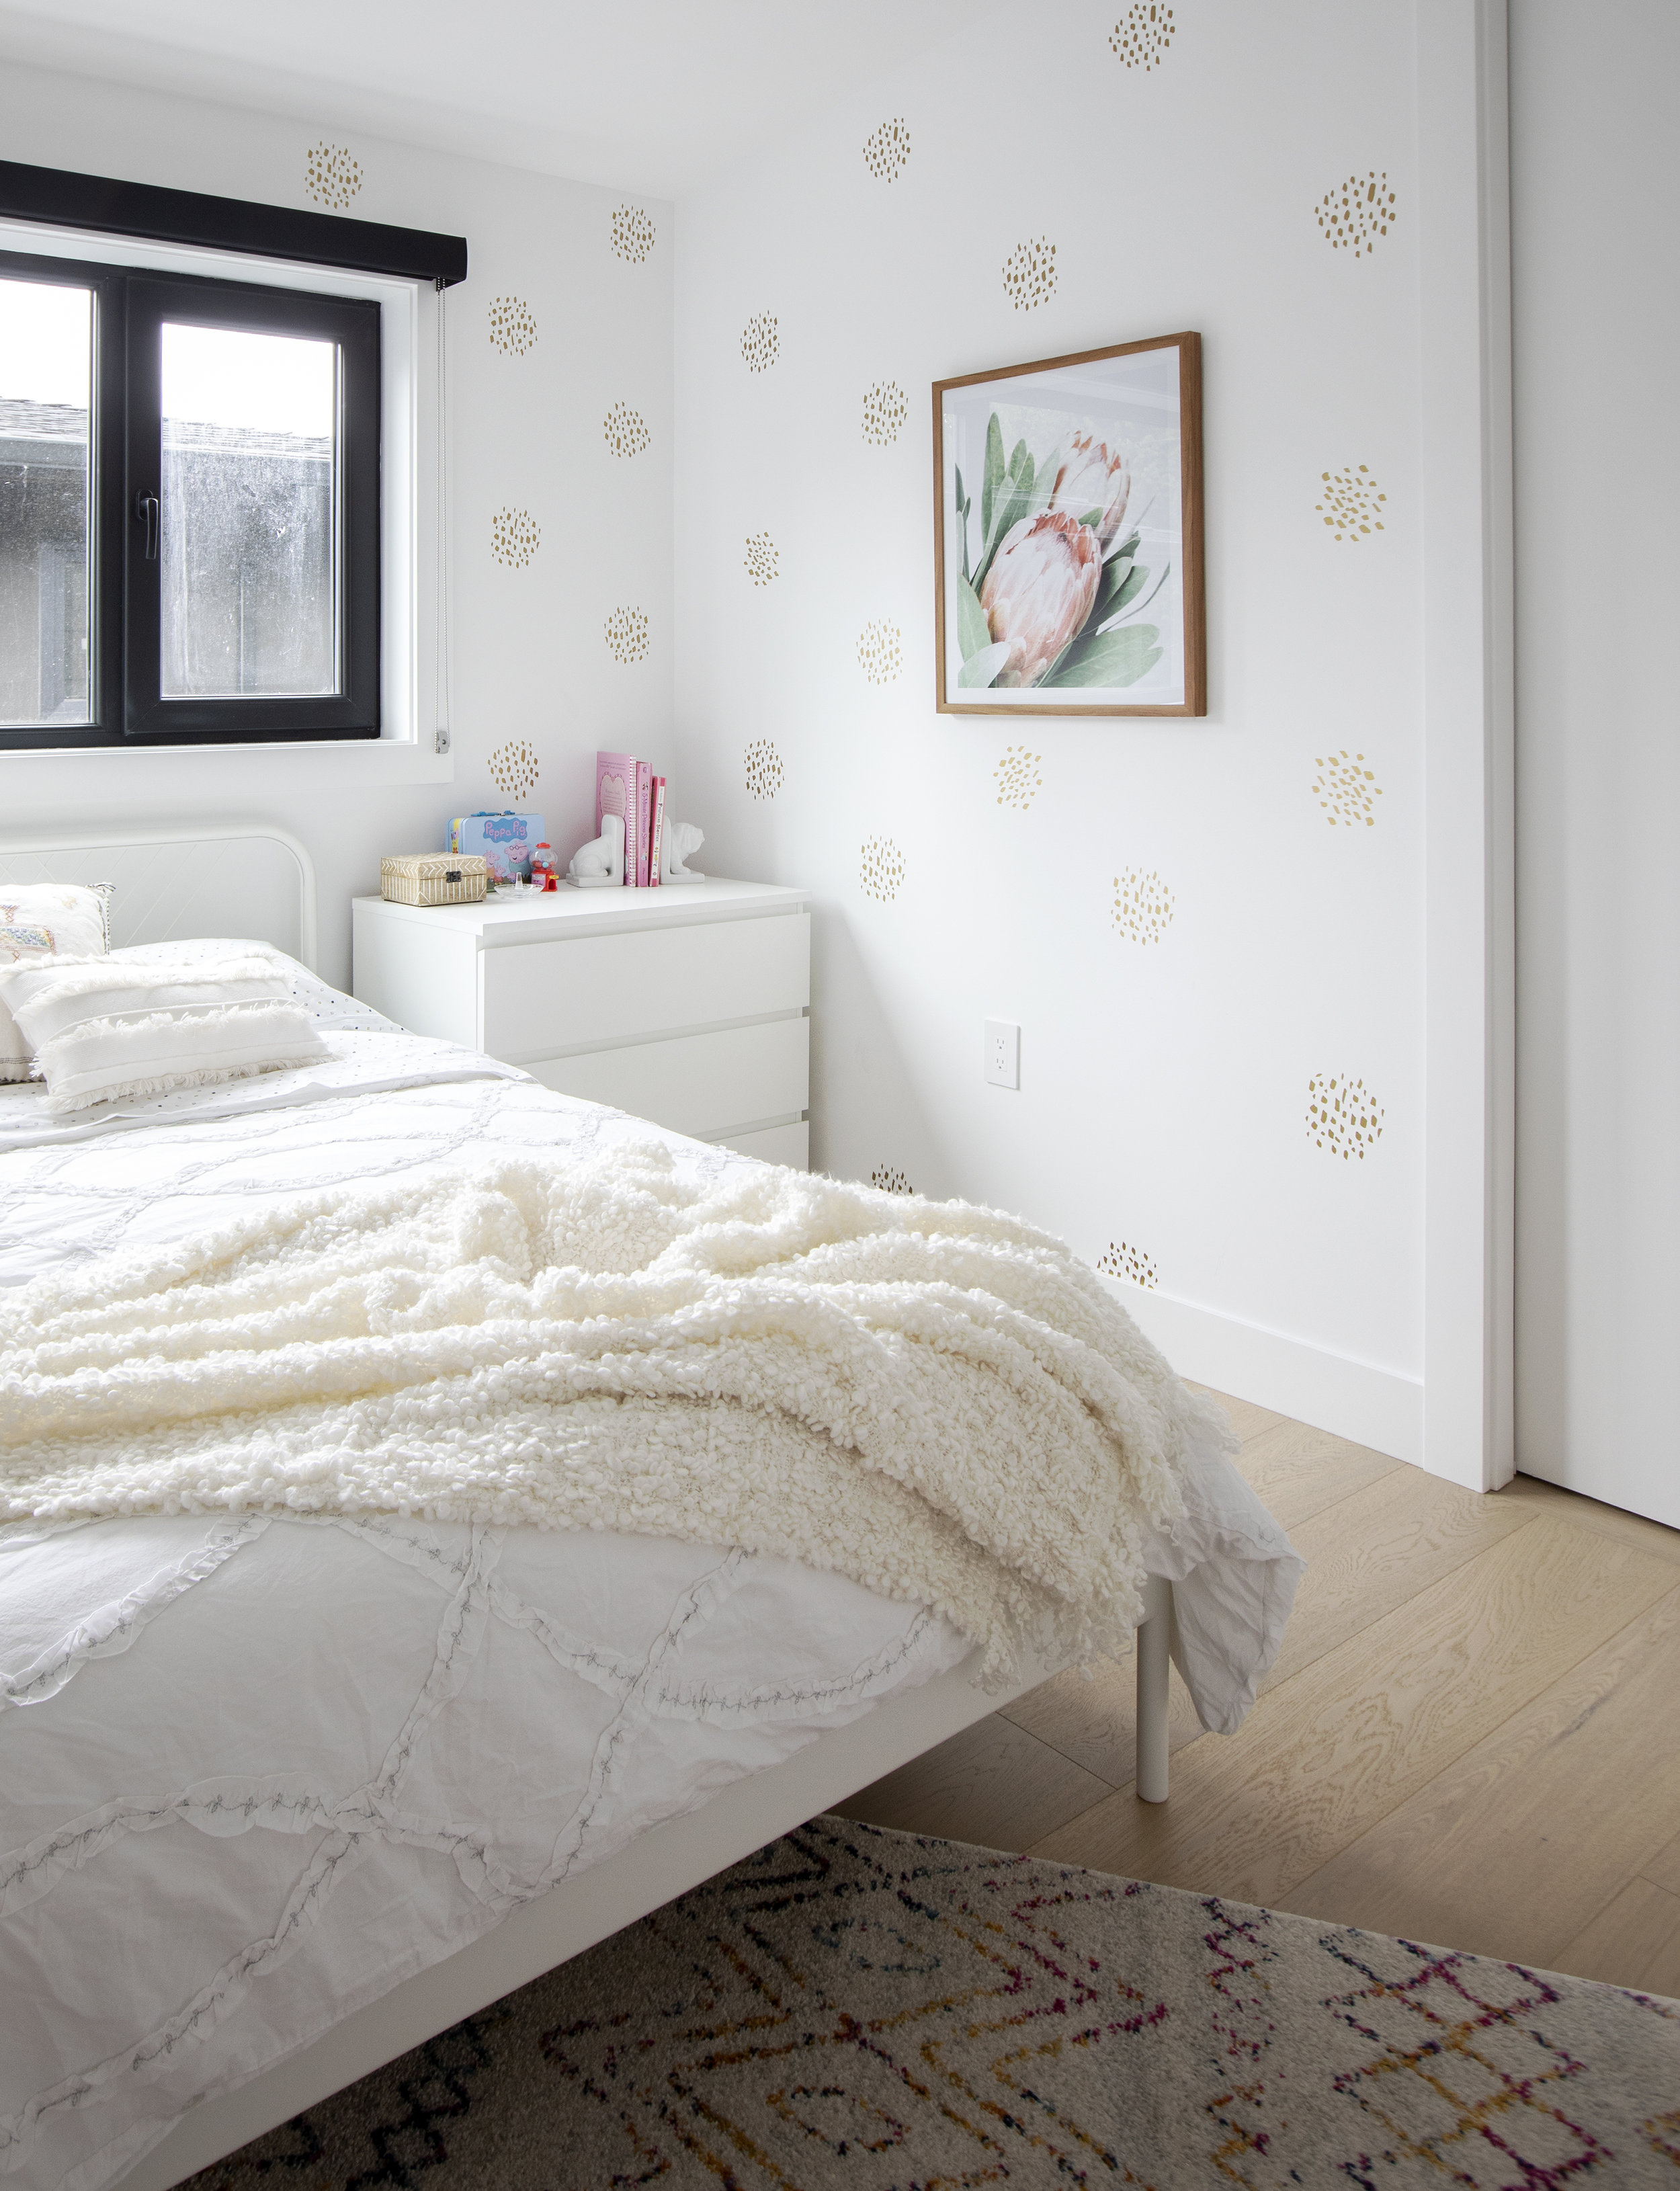 An older child's bedroom in East 13th Street has a decorative wallpaper with clusters of little gold dots.